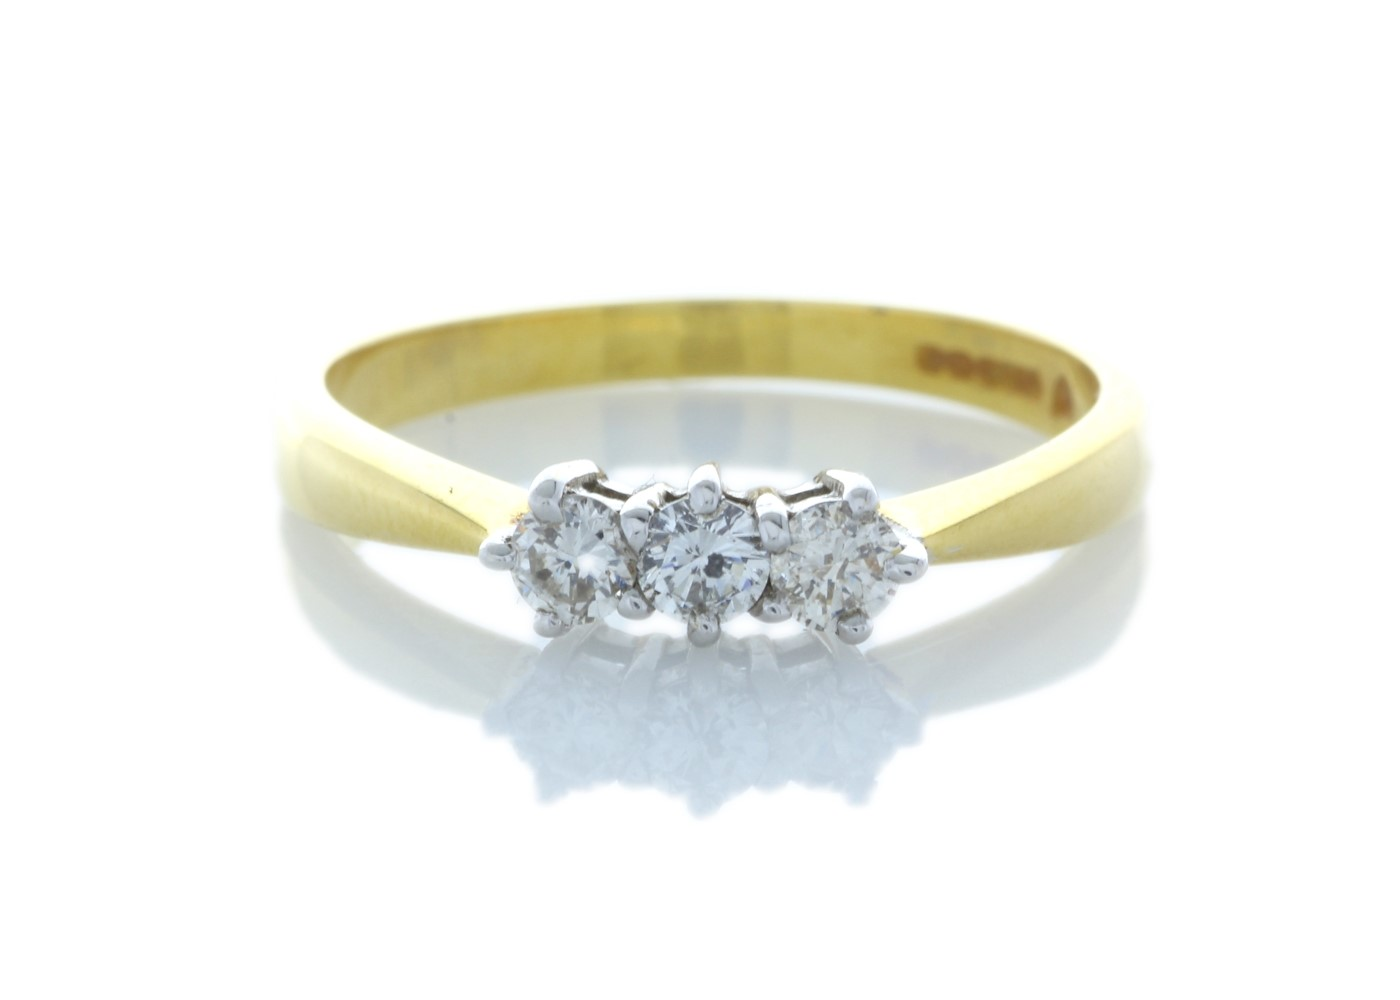 9ct Yellow Gold Three Stone Claw Set Diamond Ring 0.25 Carats